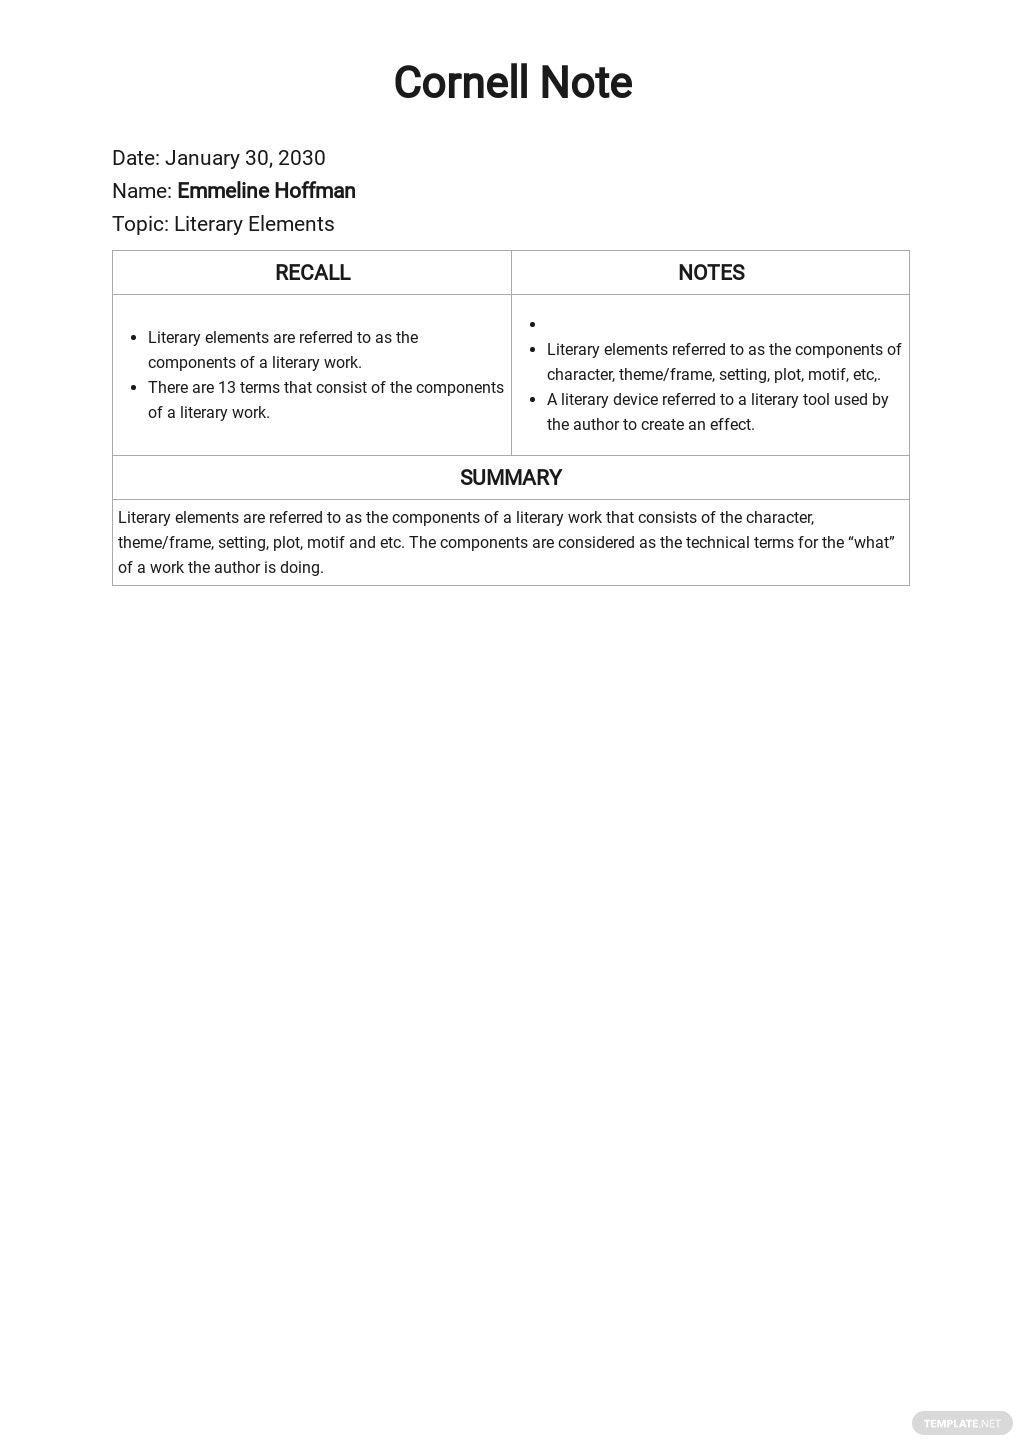 Cornell Notes Summary Template